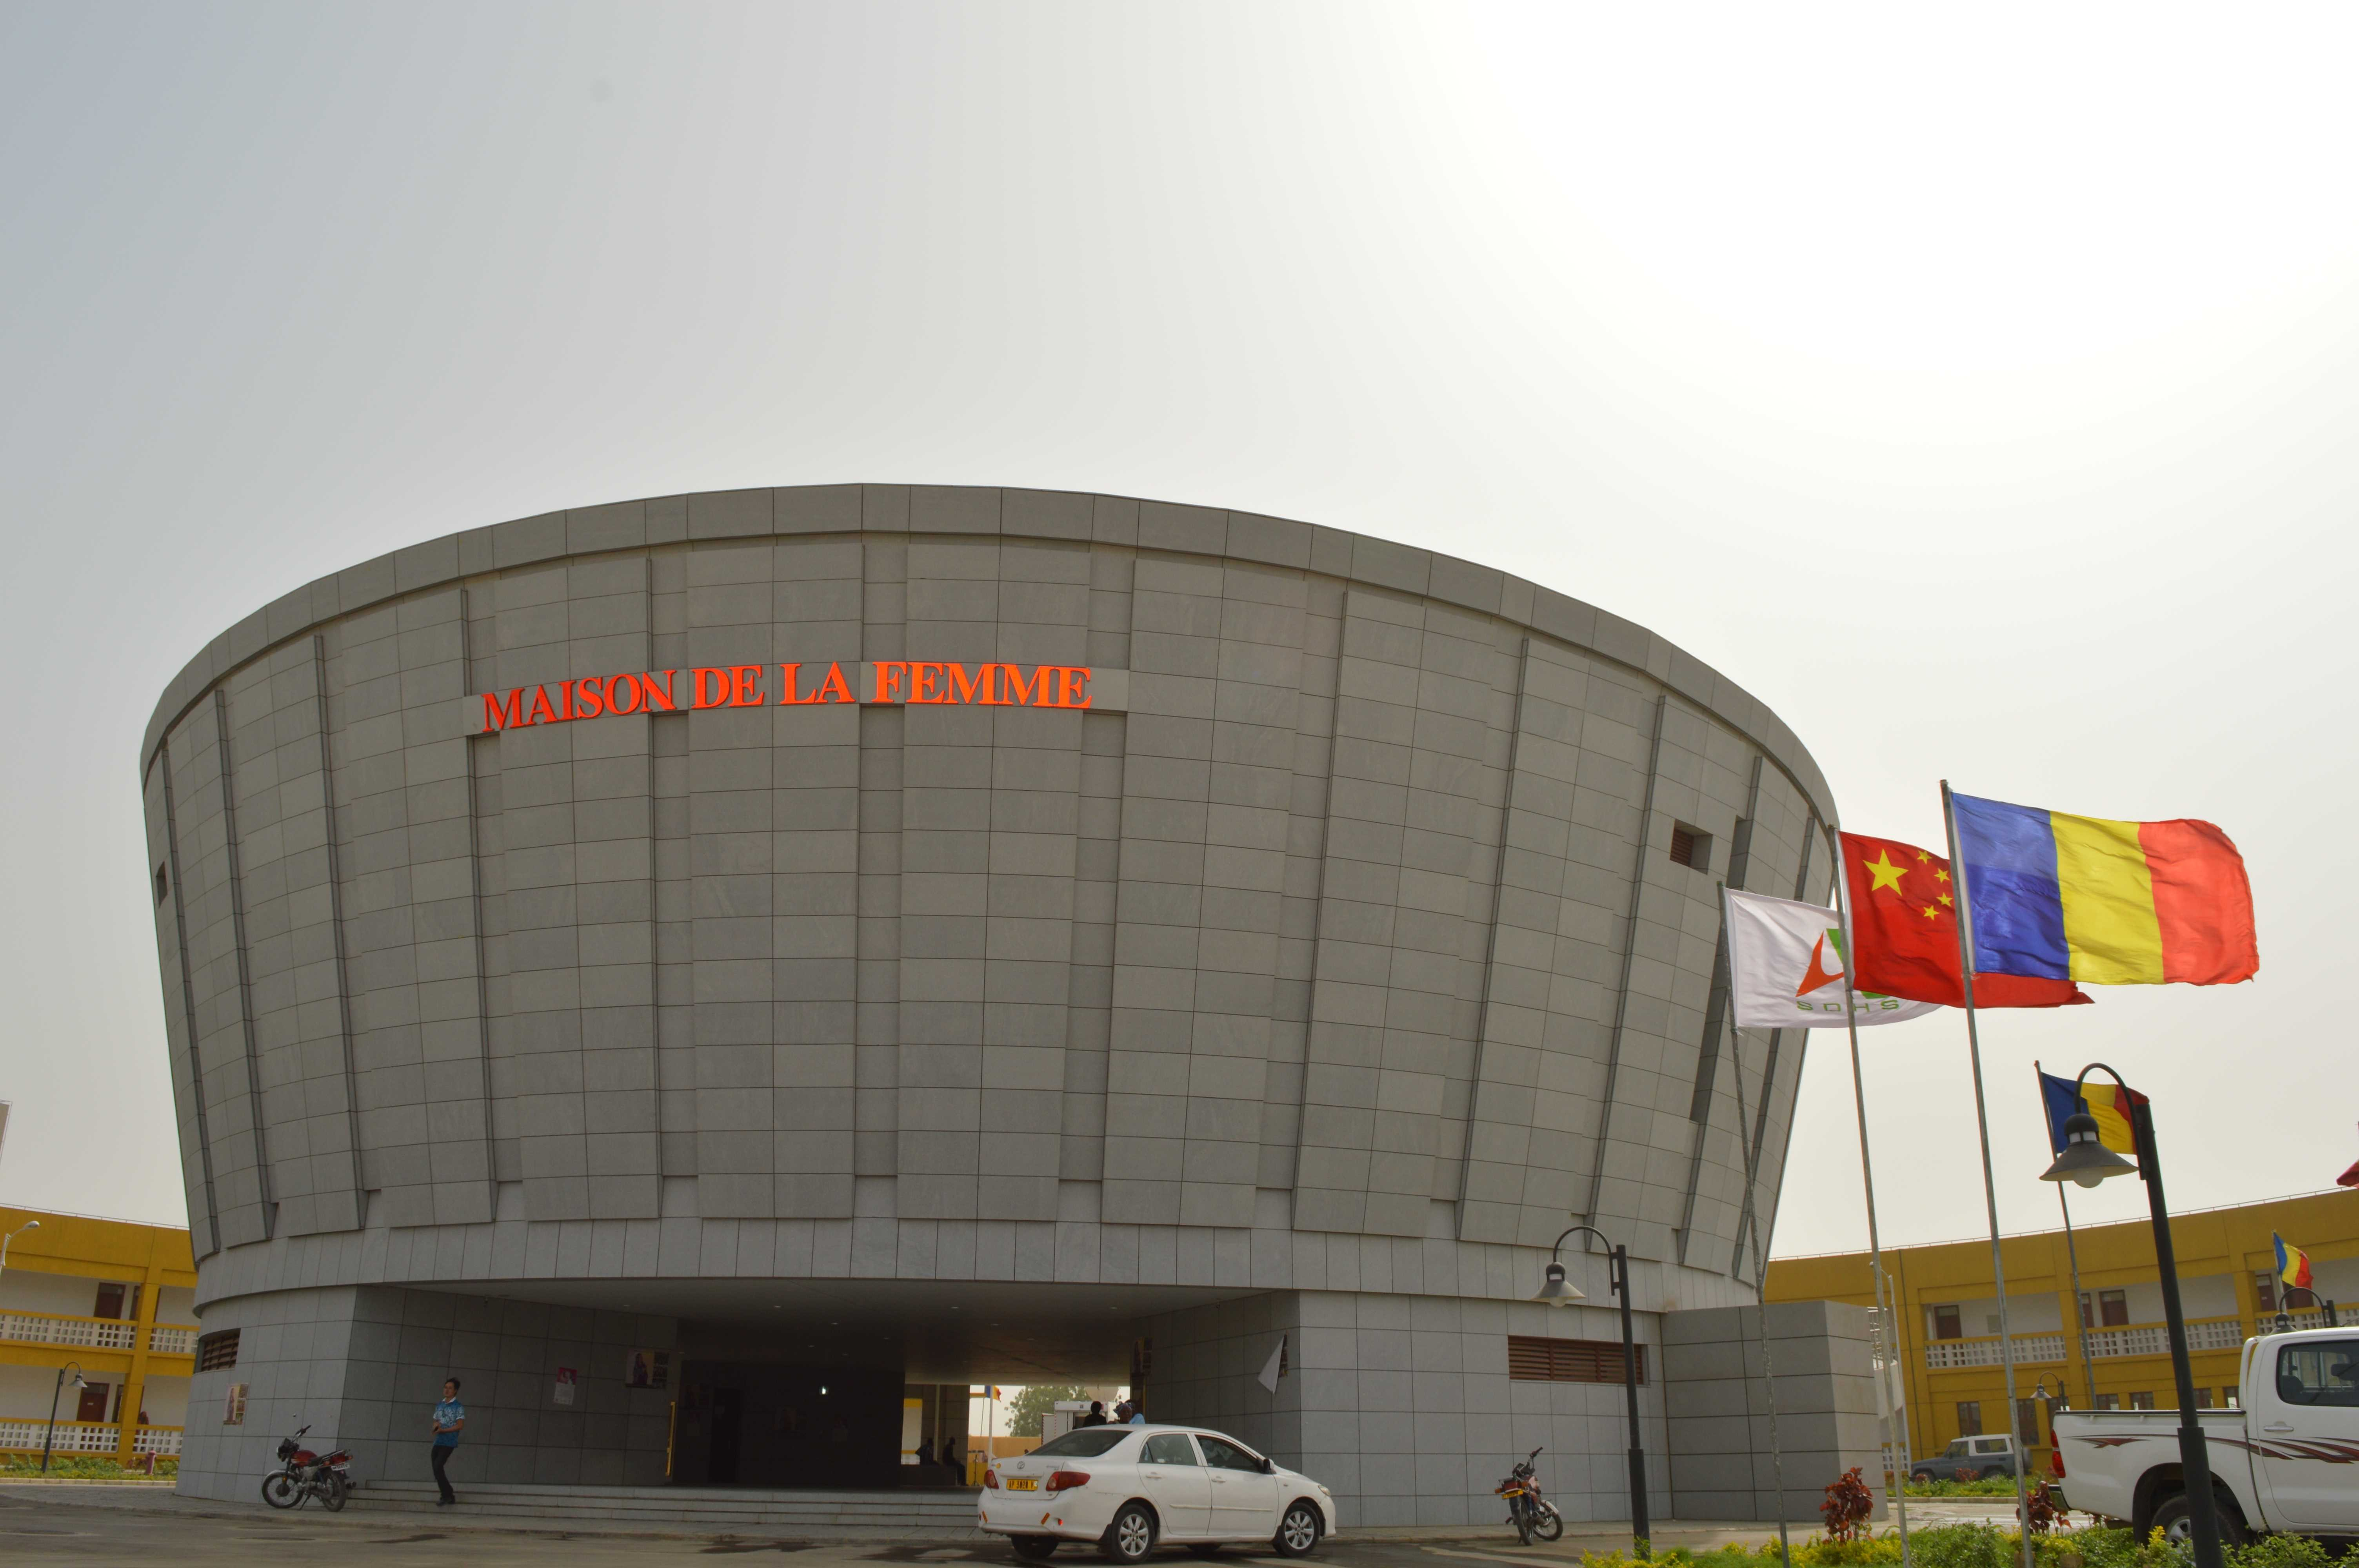 Support for the main building of the Women's Training Center